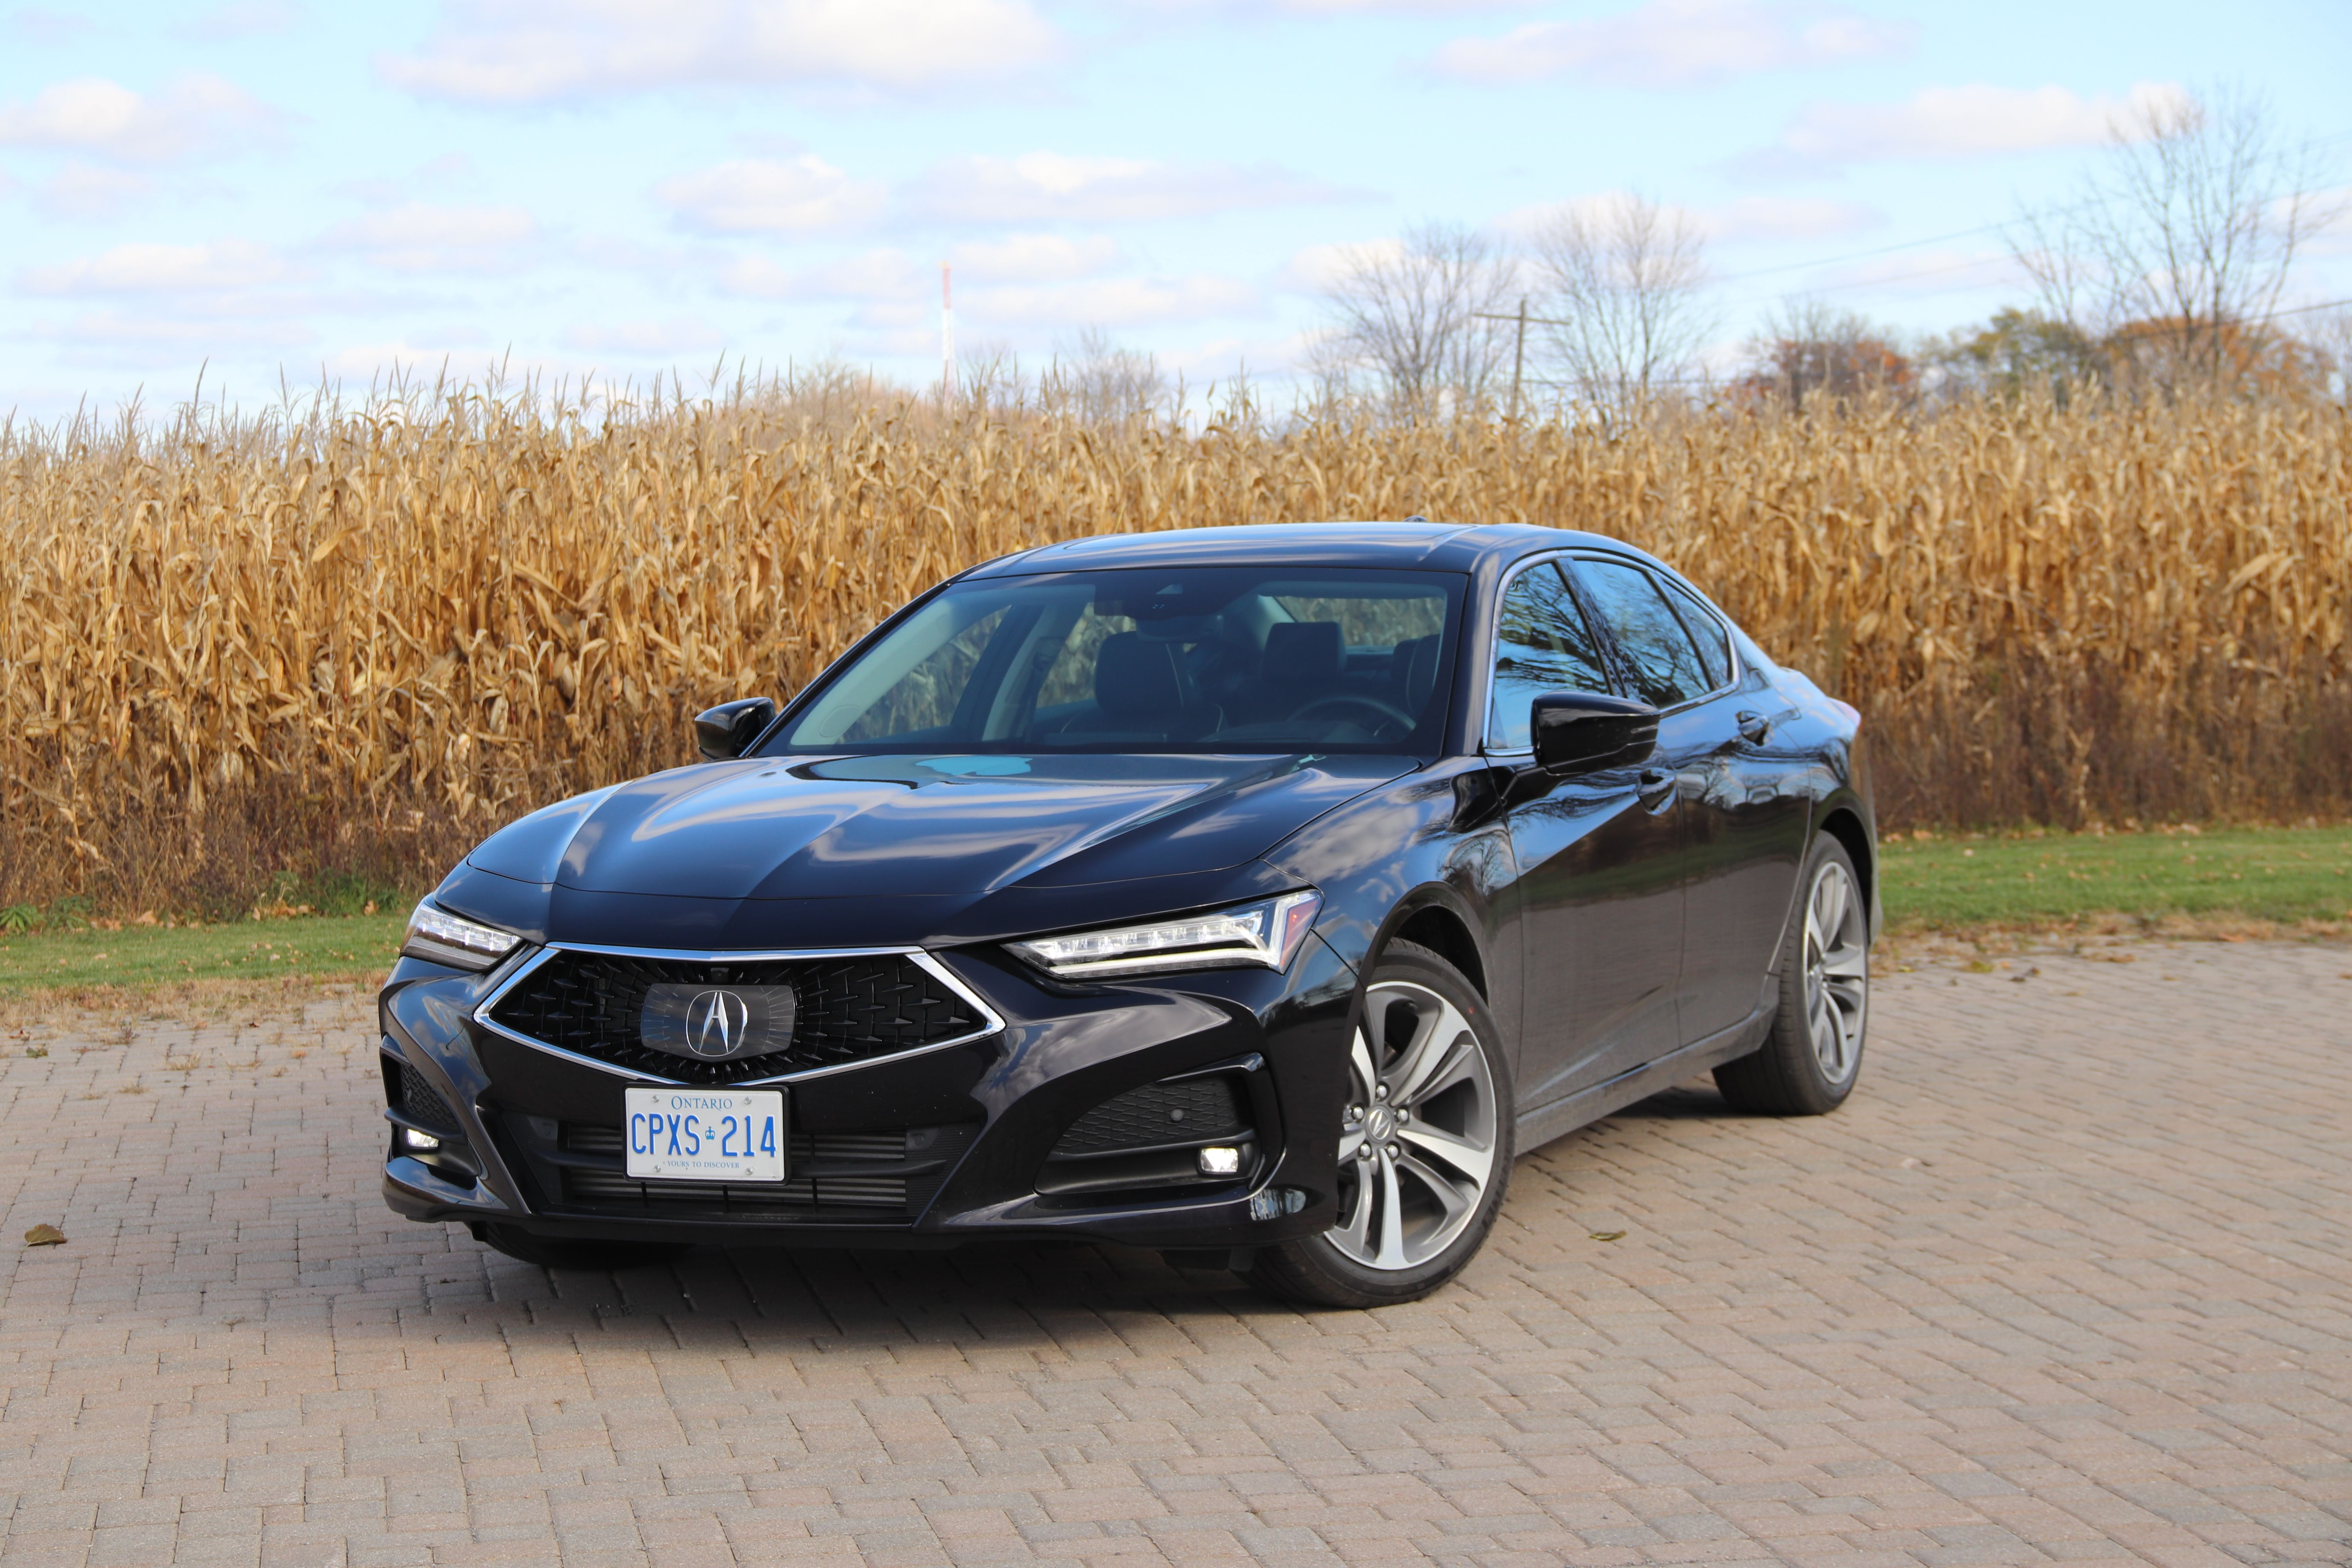 Review The 2021 Acura Tlx Successfully Gets The Automaker Back To Its Performance Roots The Globe And Mail